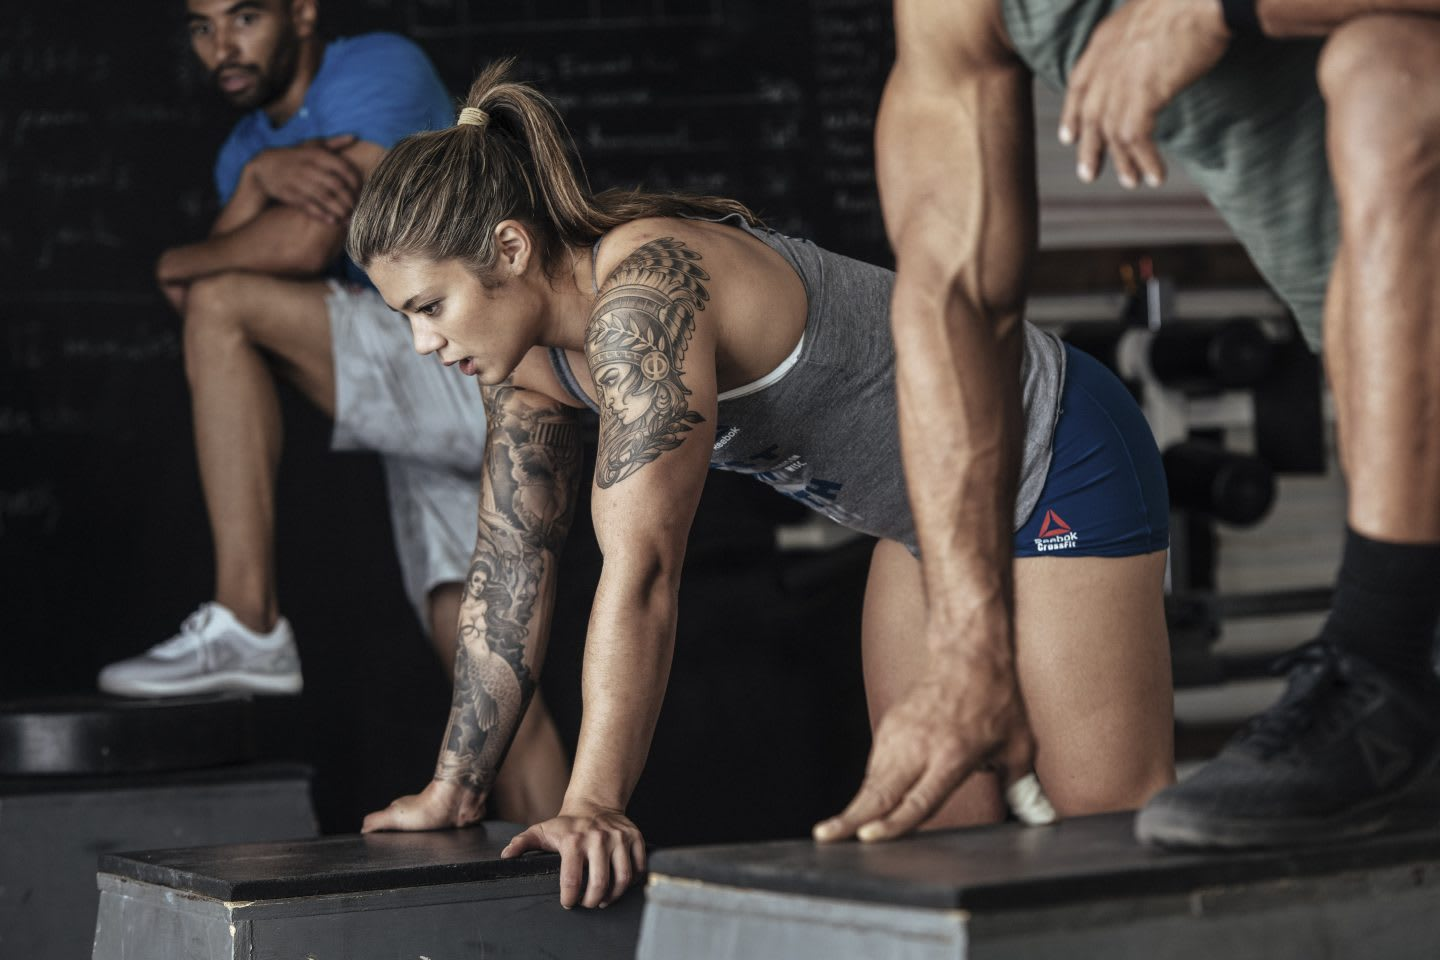 Girl resting after workout on bench, strong, physical strength, workout, challenge, sports, Reebok, crossFit, athlete, woman, sports marketing, GamePlan A